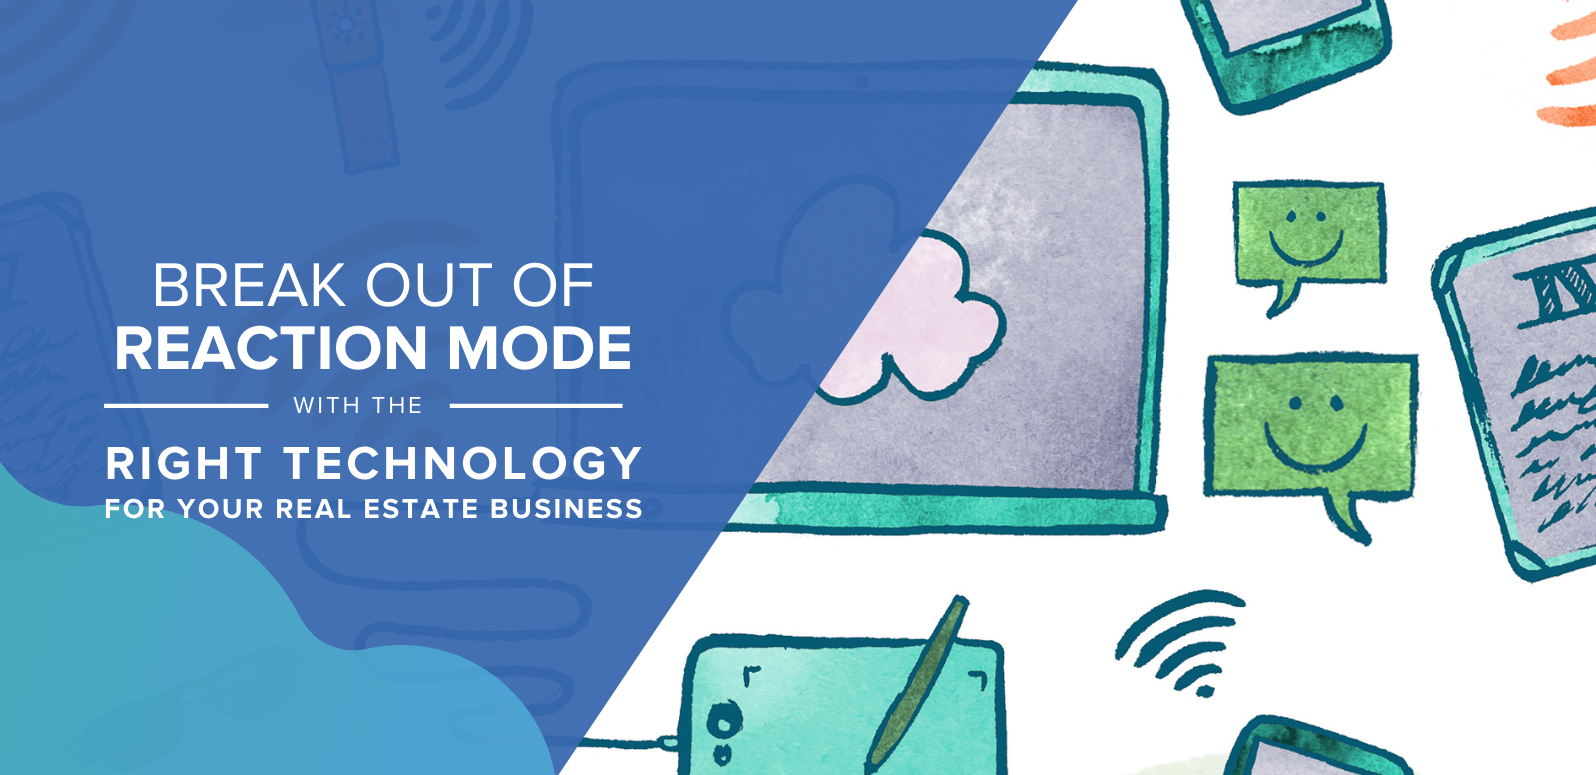 Break Out Of Reaction Mode With The Right Technology For Your Real Estate Business